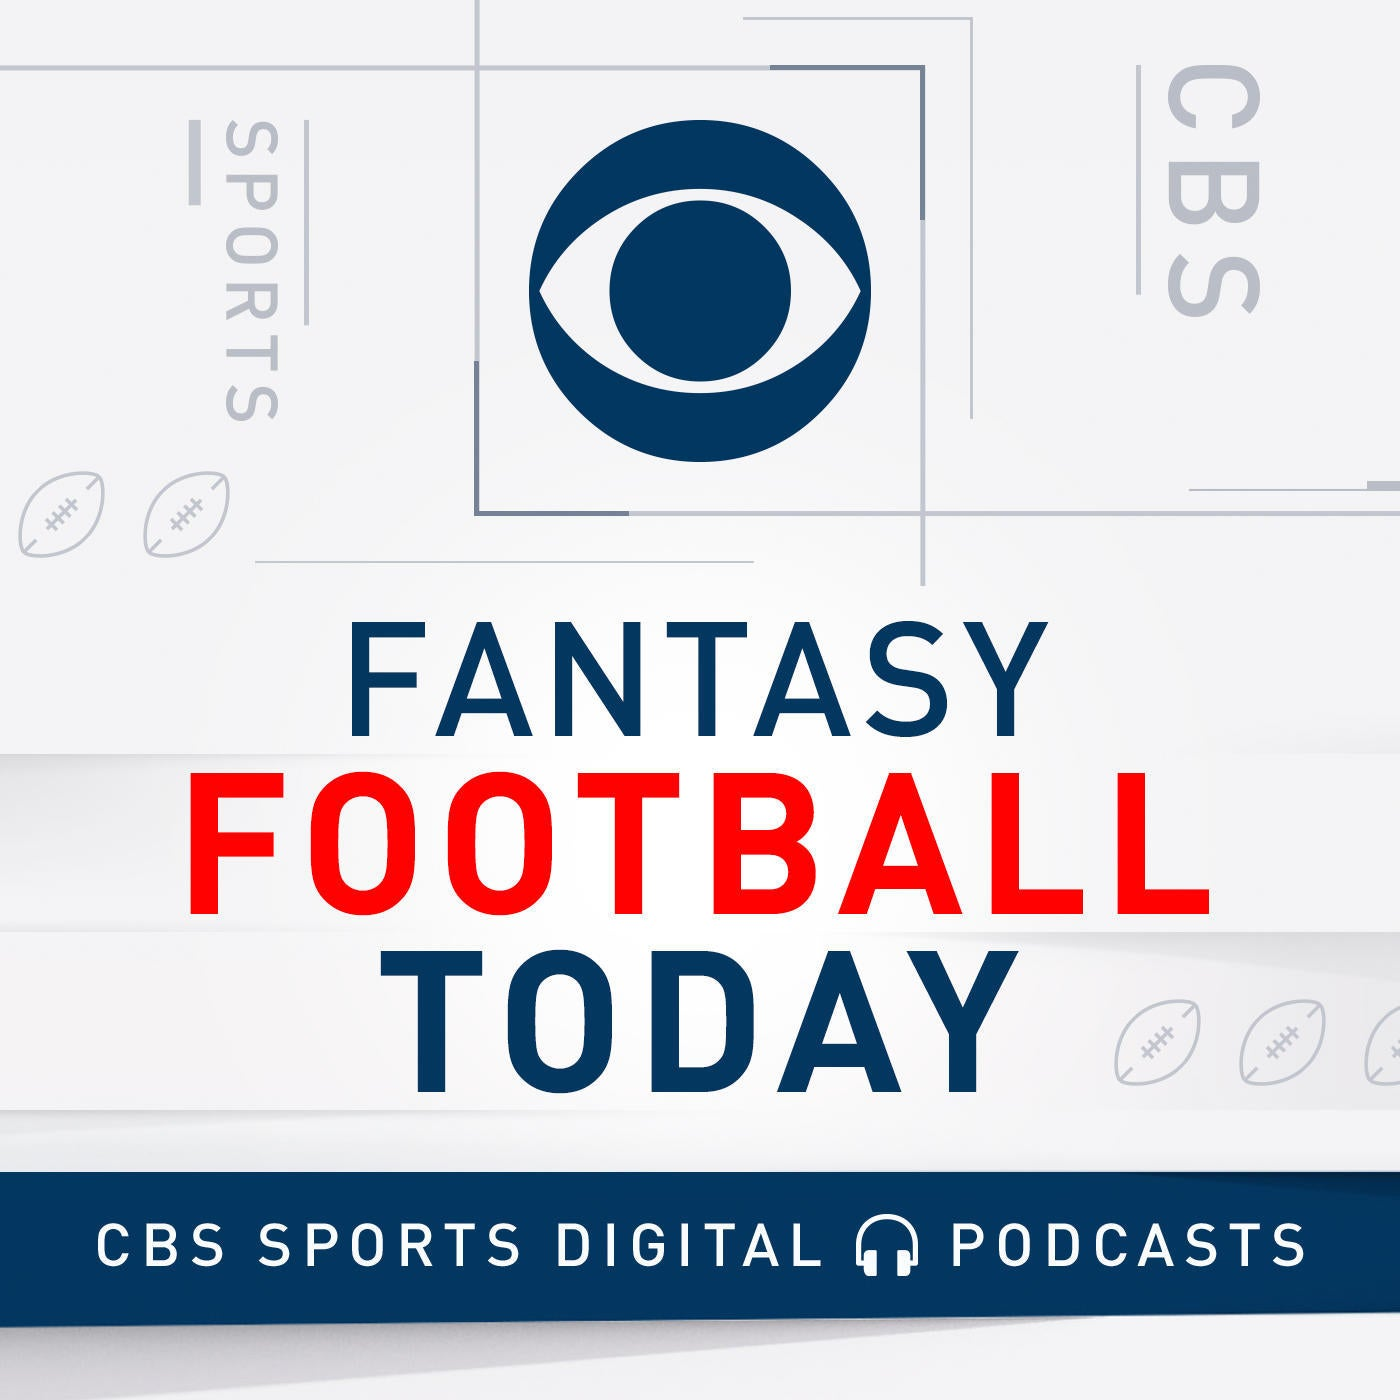 Podcast: Fantasy Football Today logo